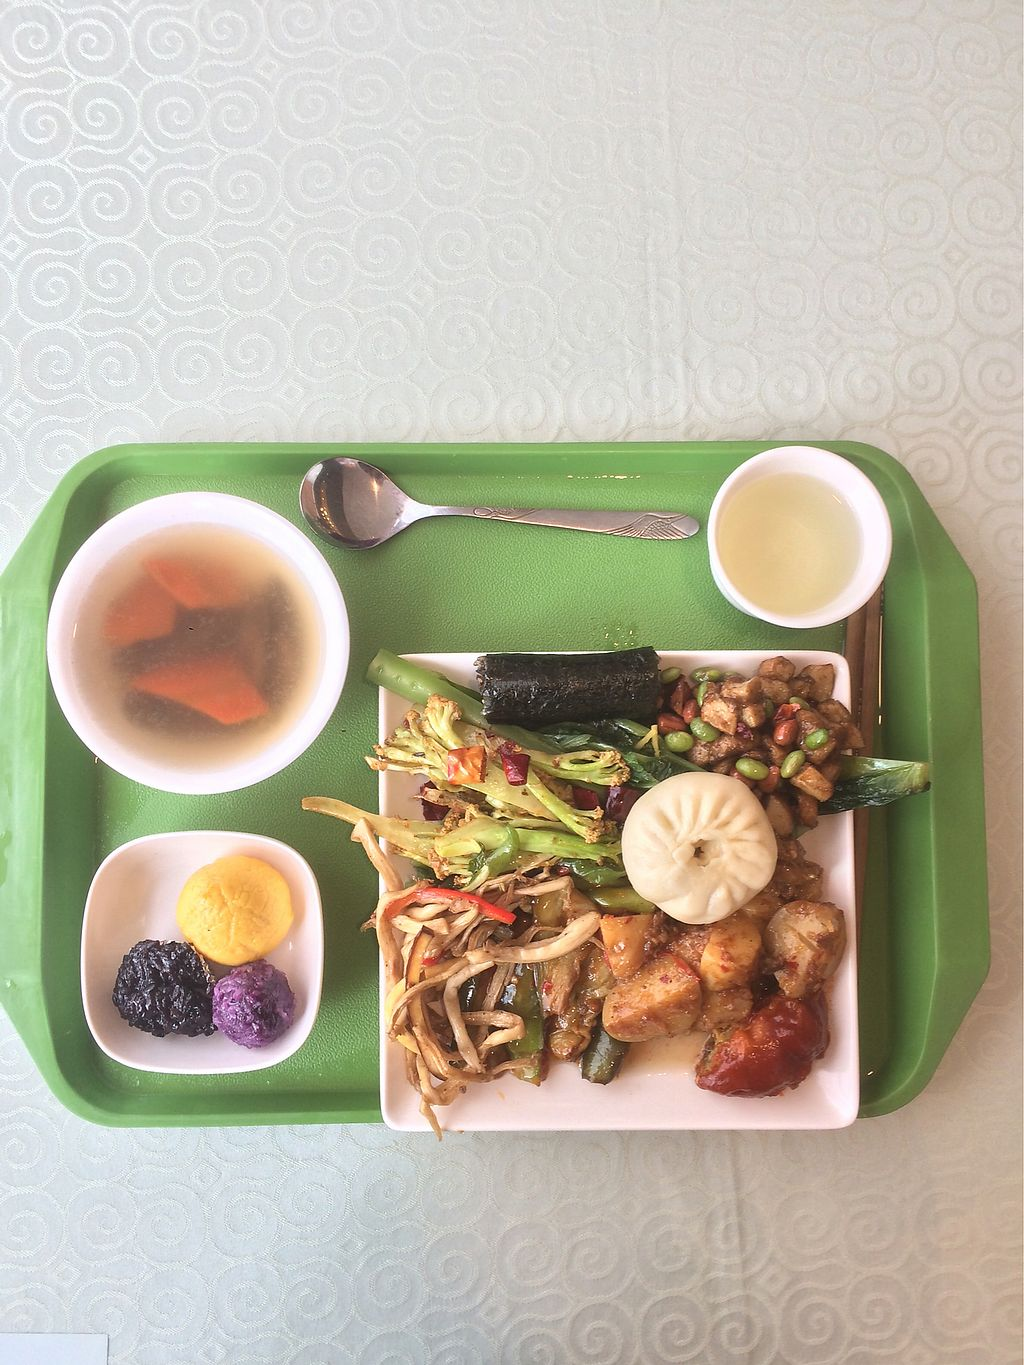 "Photo of Yusuge Garden  by <a href=""/members/profile/smitsen94"">smitsen94</a> <br/>Plate of buffet  <br/> May 10, 2018  - <a href='/contact/abuse/image/78957/397633'>Report</a>"